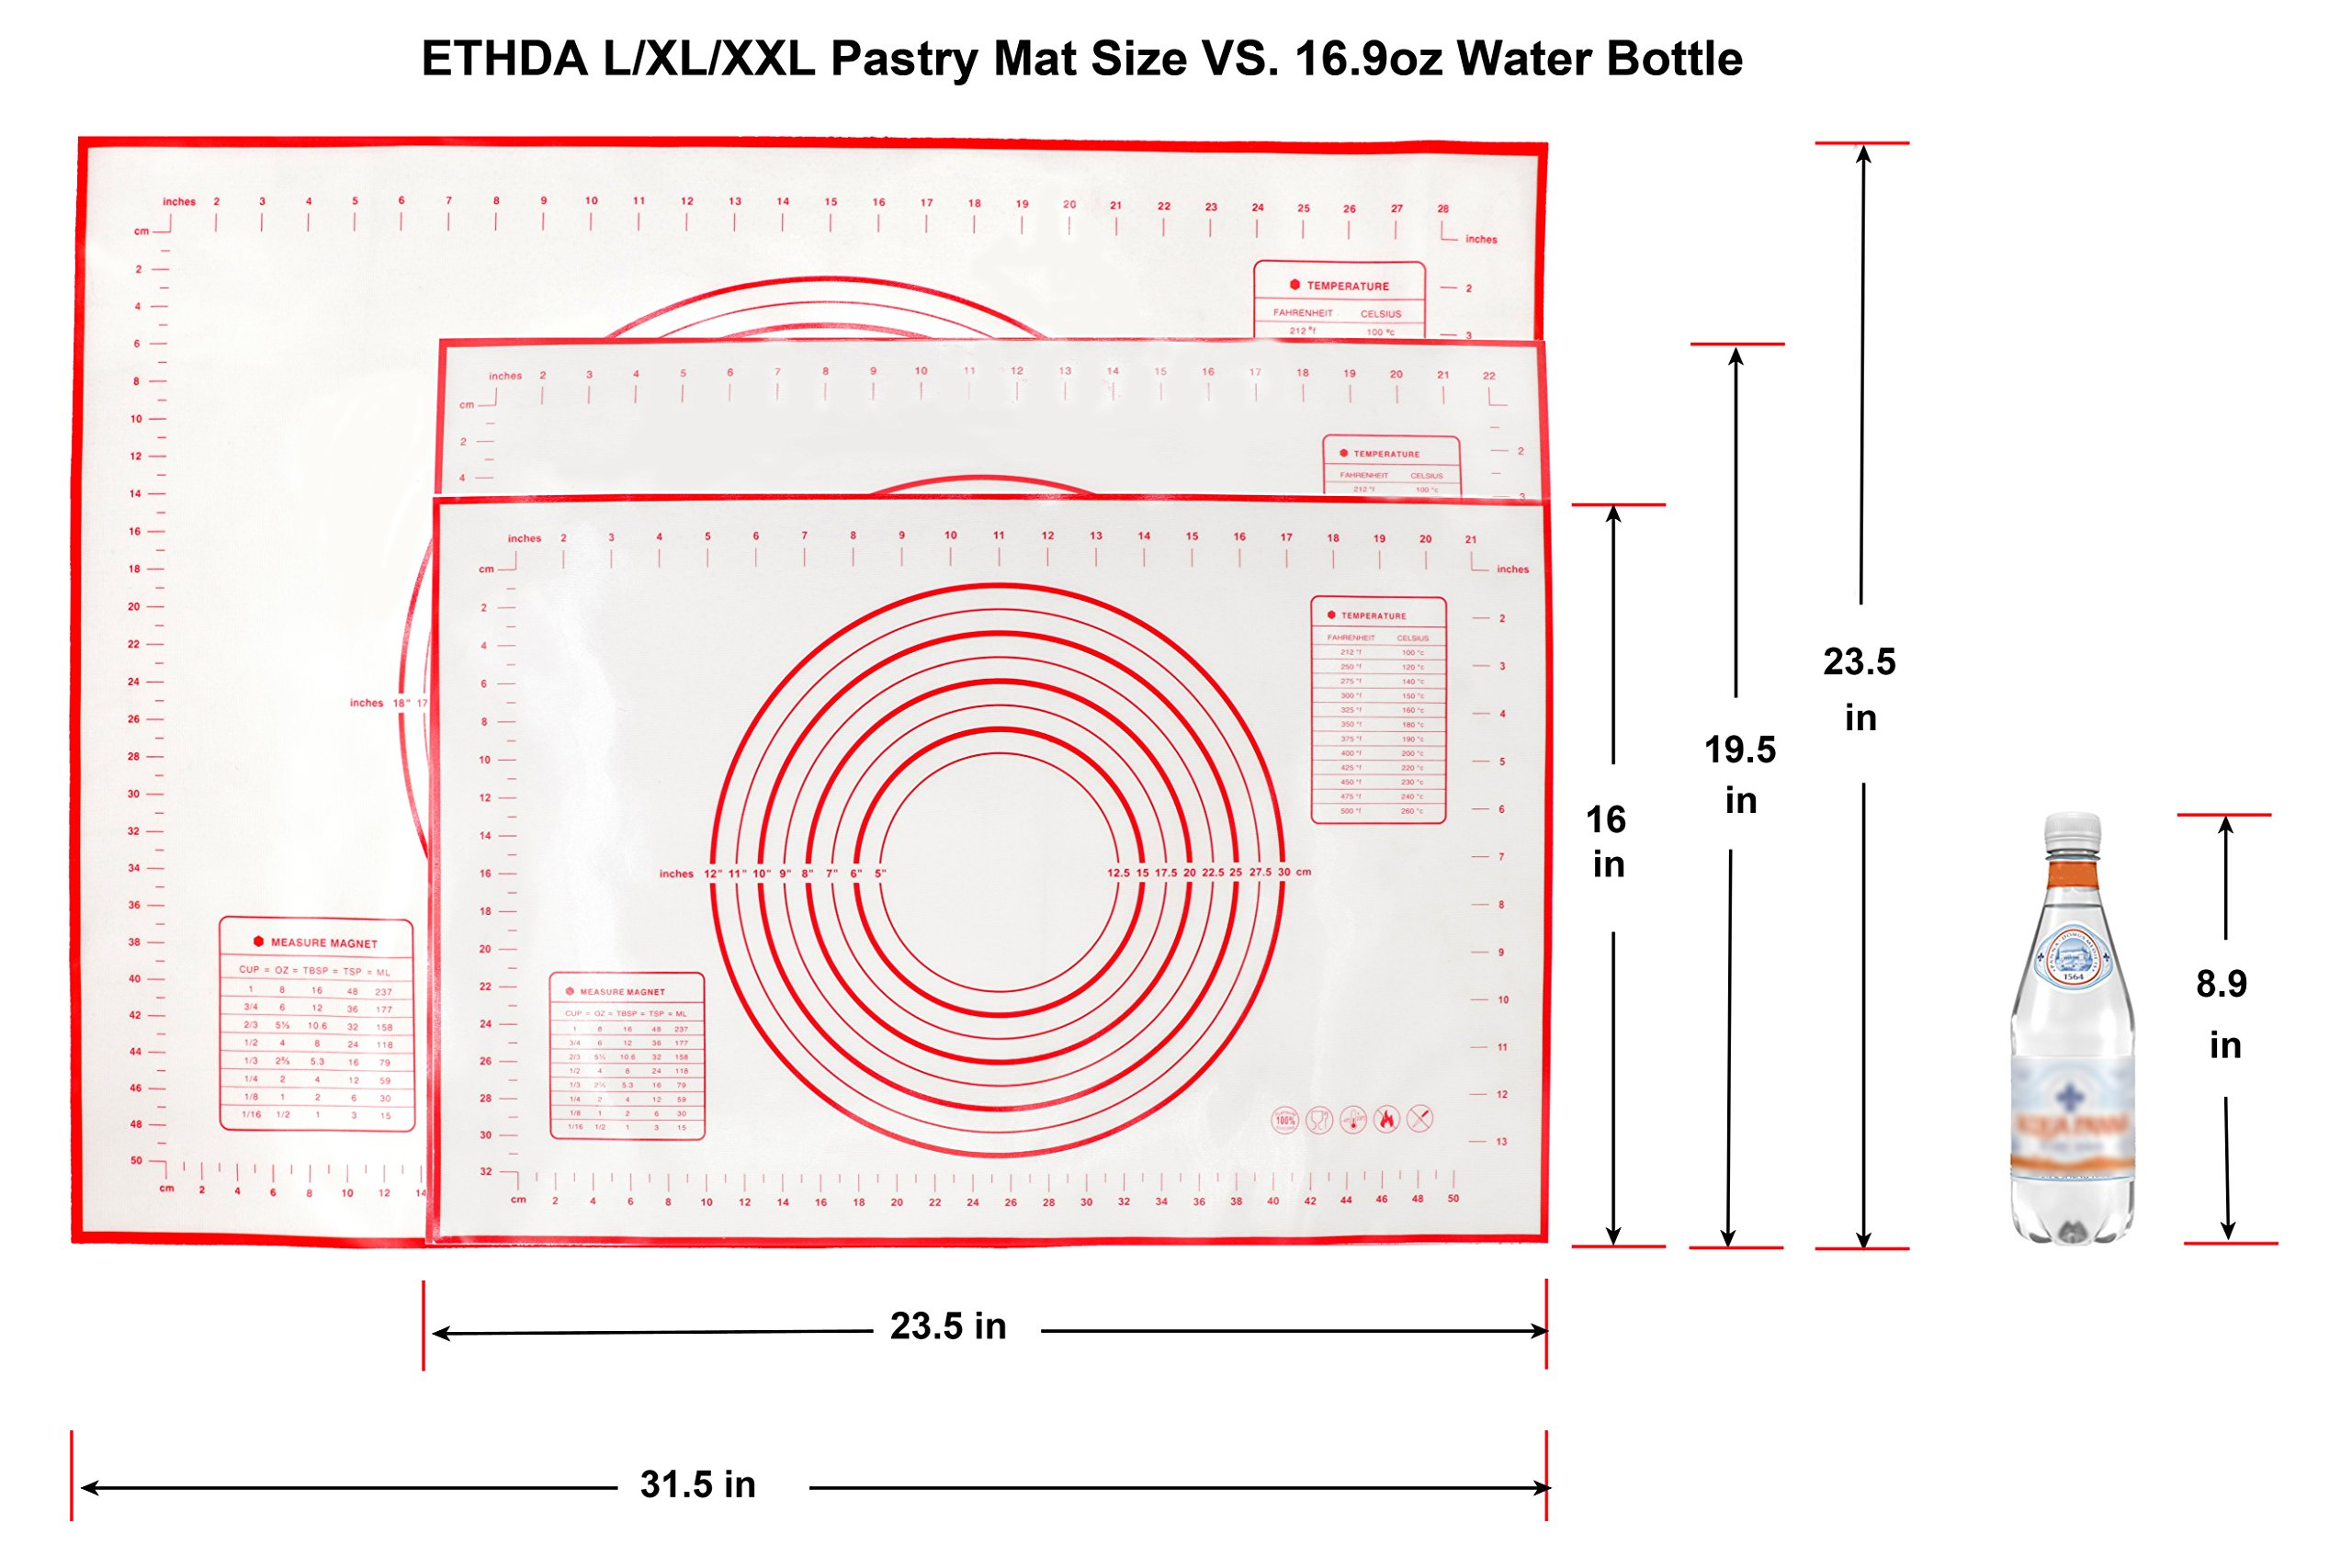 ETHDA Silicone Pastry Mat Extra Large with Measurements, Dough Rolling Baking Sheet, Non-Slip, Non-Stick,Oven Liner for Fondant,Pie Crust,Cookie, Mother's Day Gift, XL (19.5''x23.5'') by Ethda (Image #9)